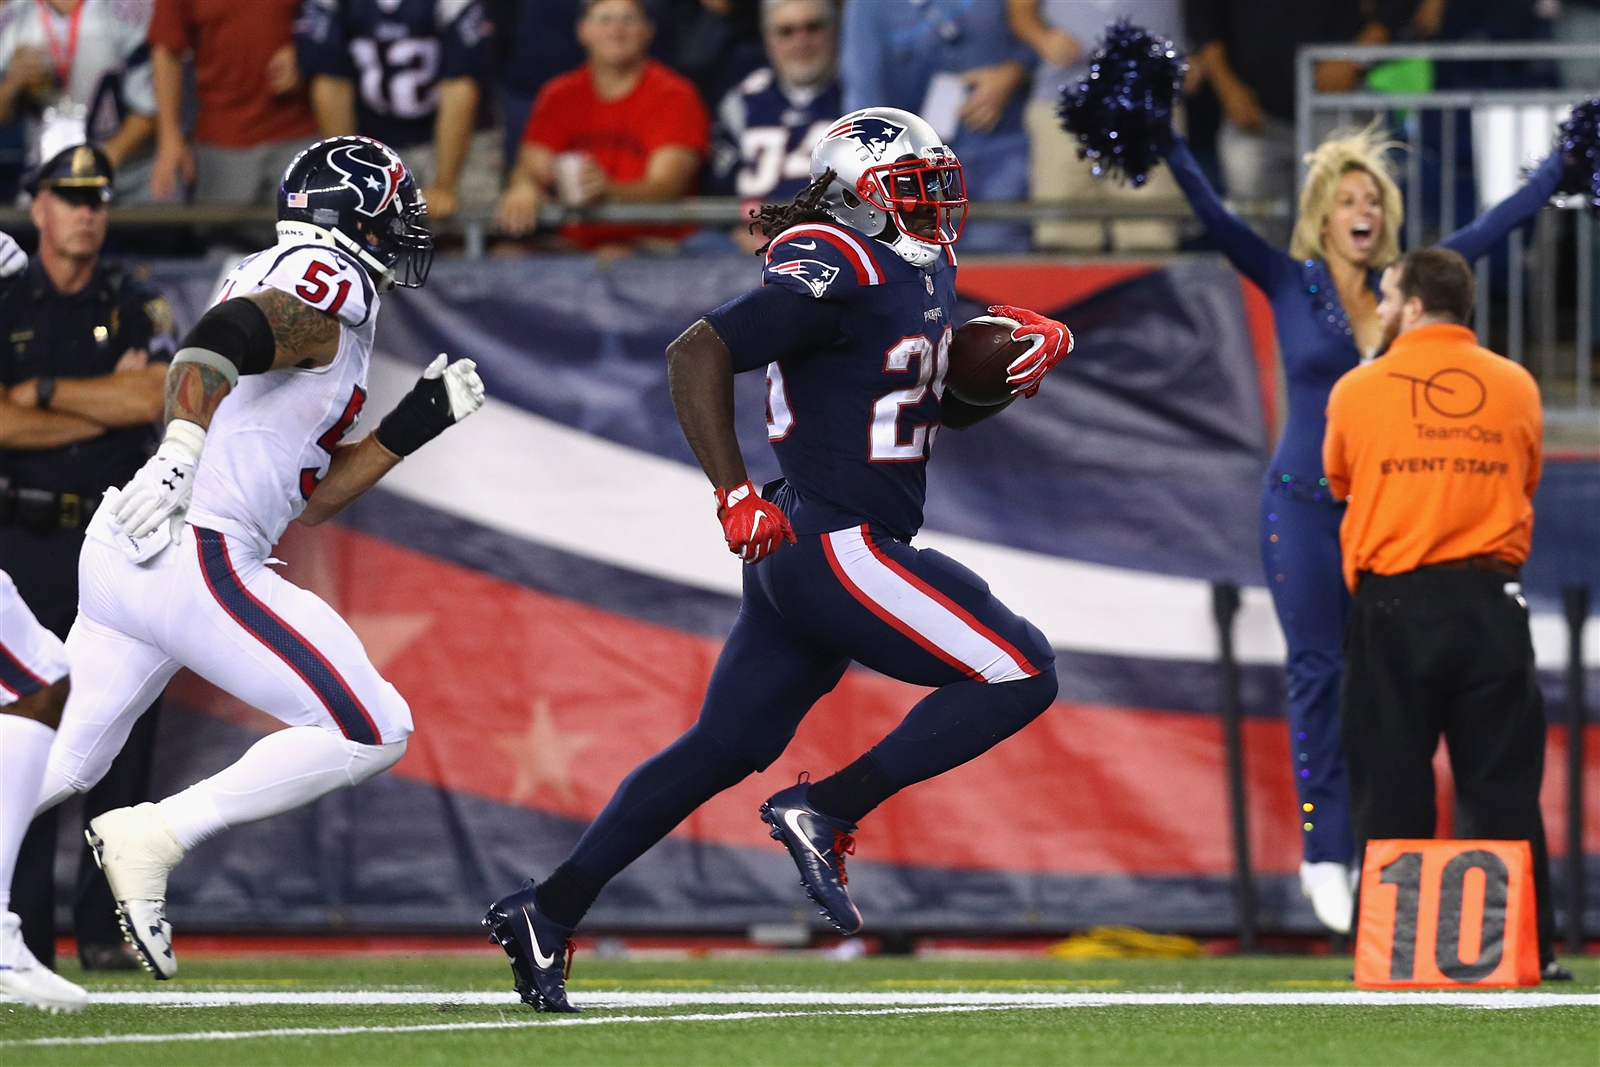 WHEN THE PATRIOTS RUN (continued): Blount leads the league with 298 yards on 75 carries, has scored four touchdowns and has carried the ball 20-plus times in each game. Wide receiver Julian Edelman has six carries on the year. EDGE: Patriots.